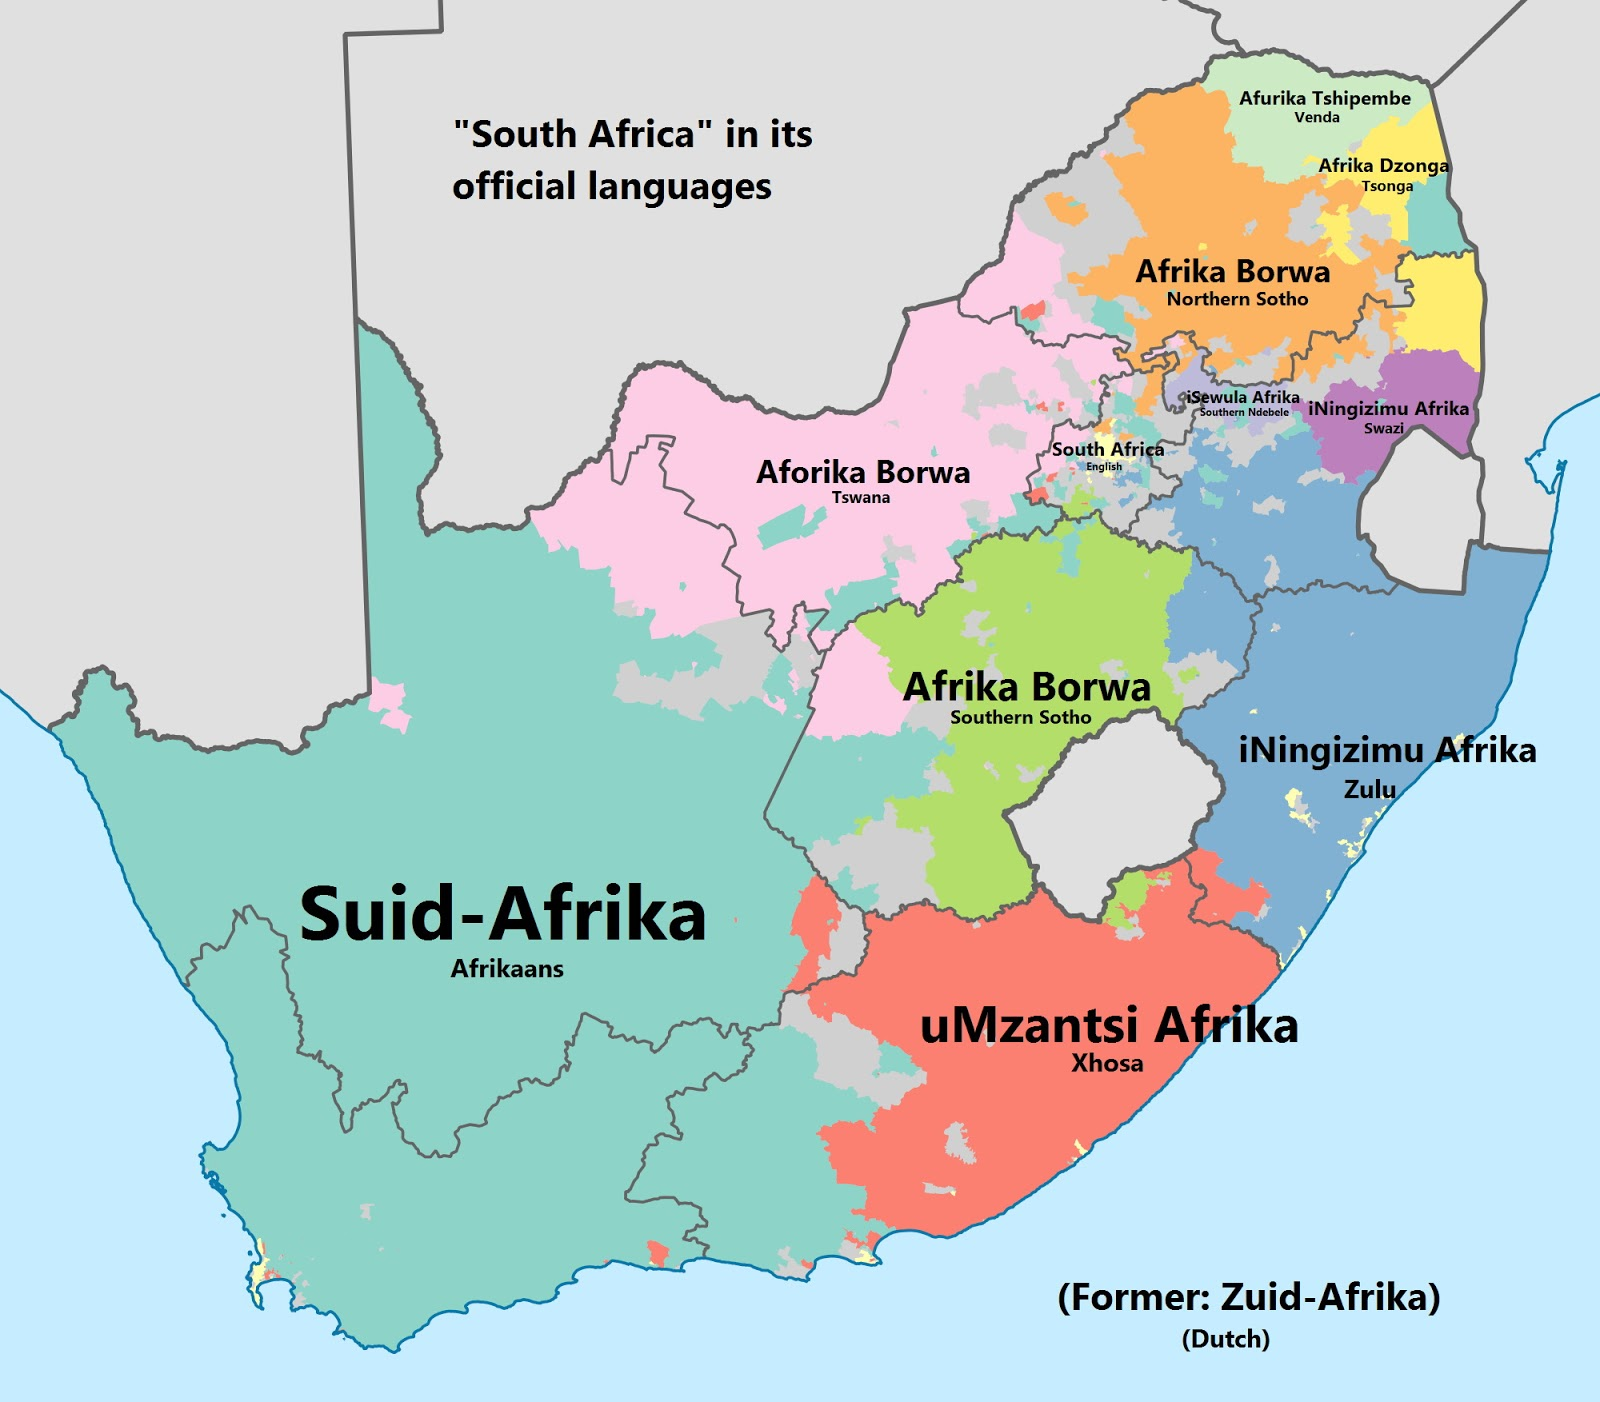 South Africa in its official languages